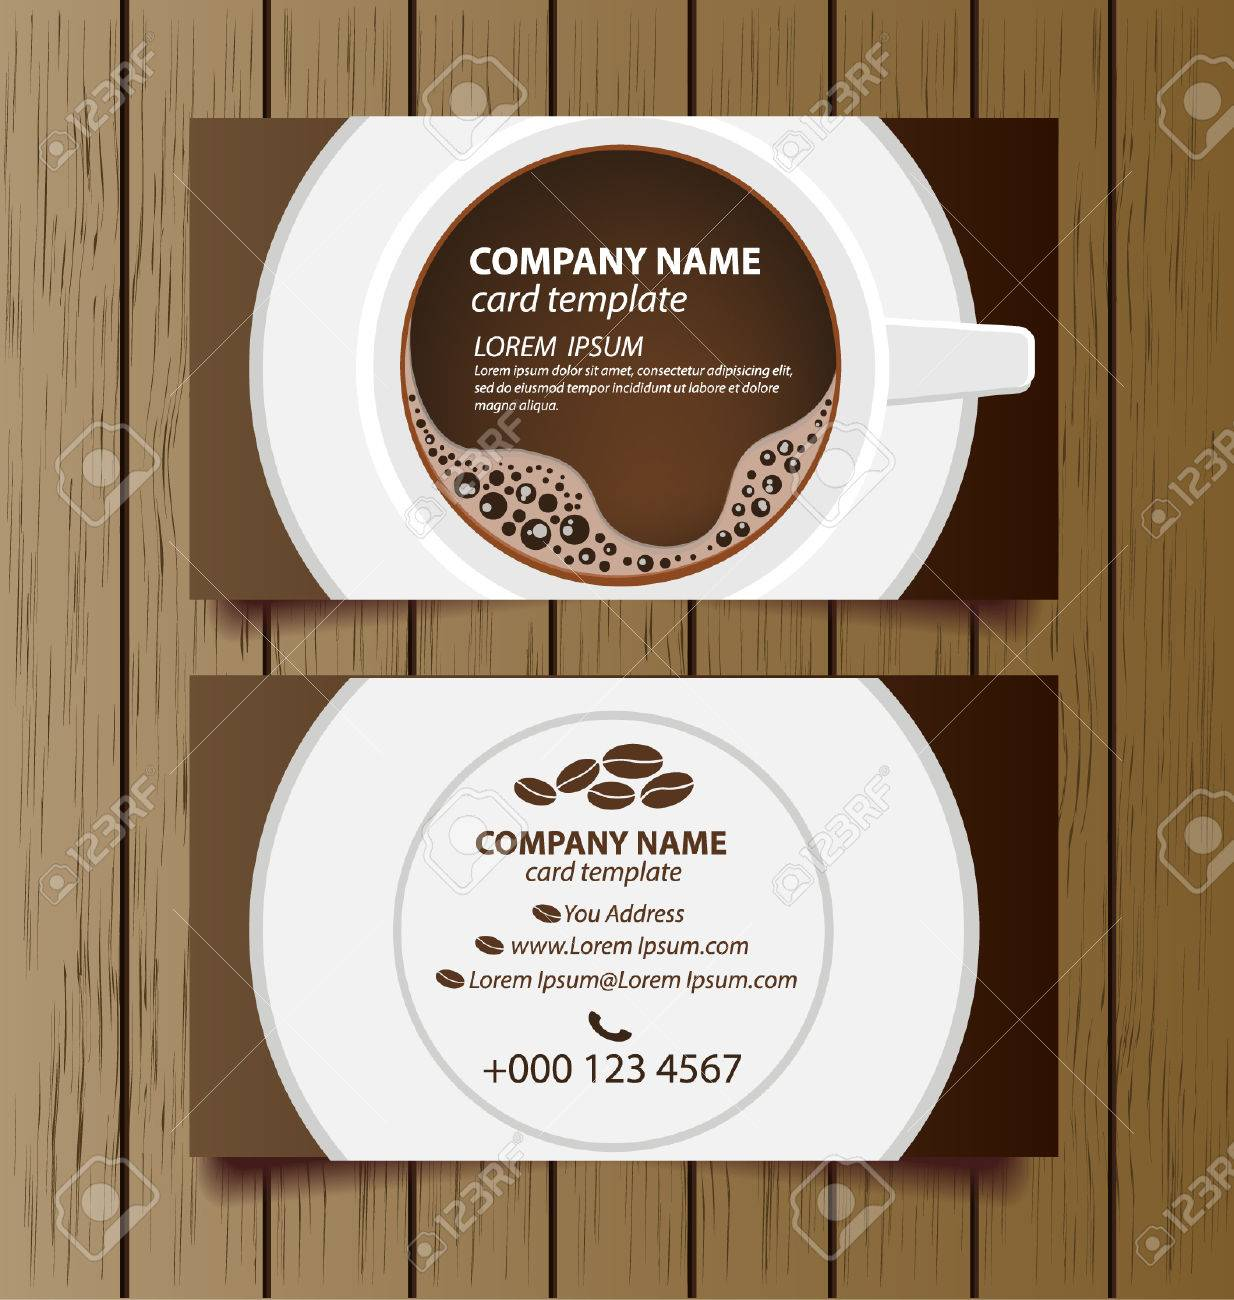 Business card coffee template vector illustration royalty free business card coffee template vector illustration stock vector 28388461 flashek Gallery